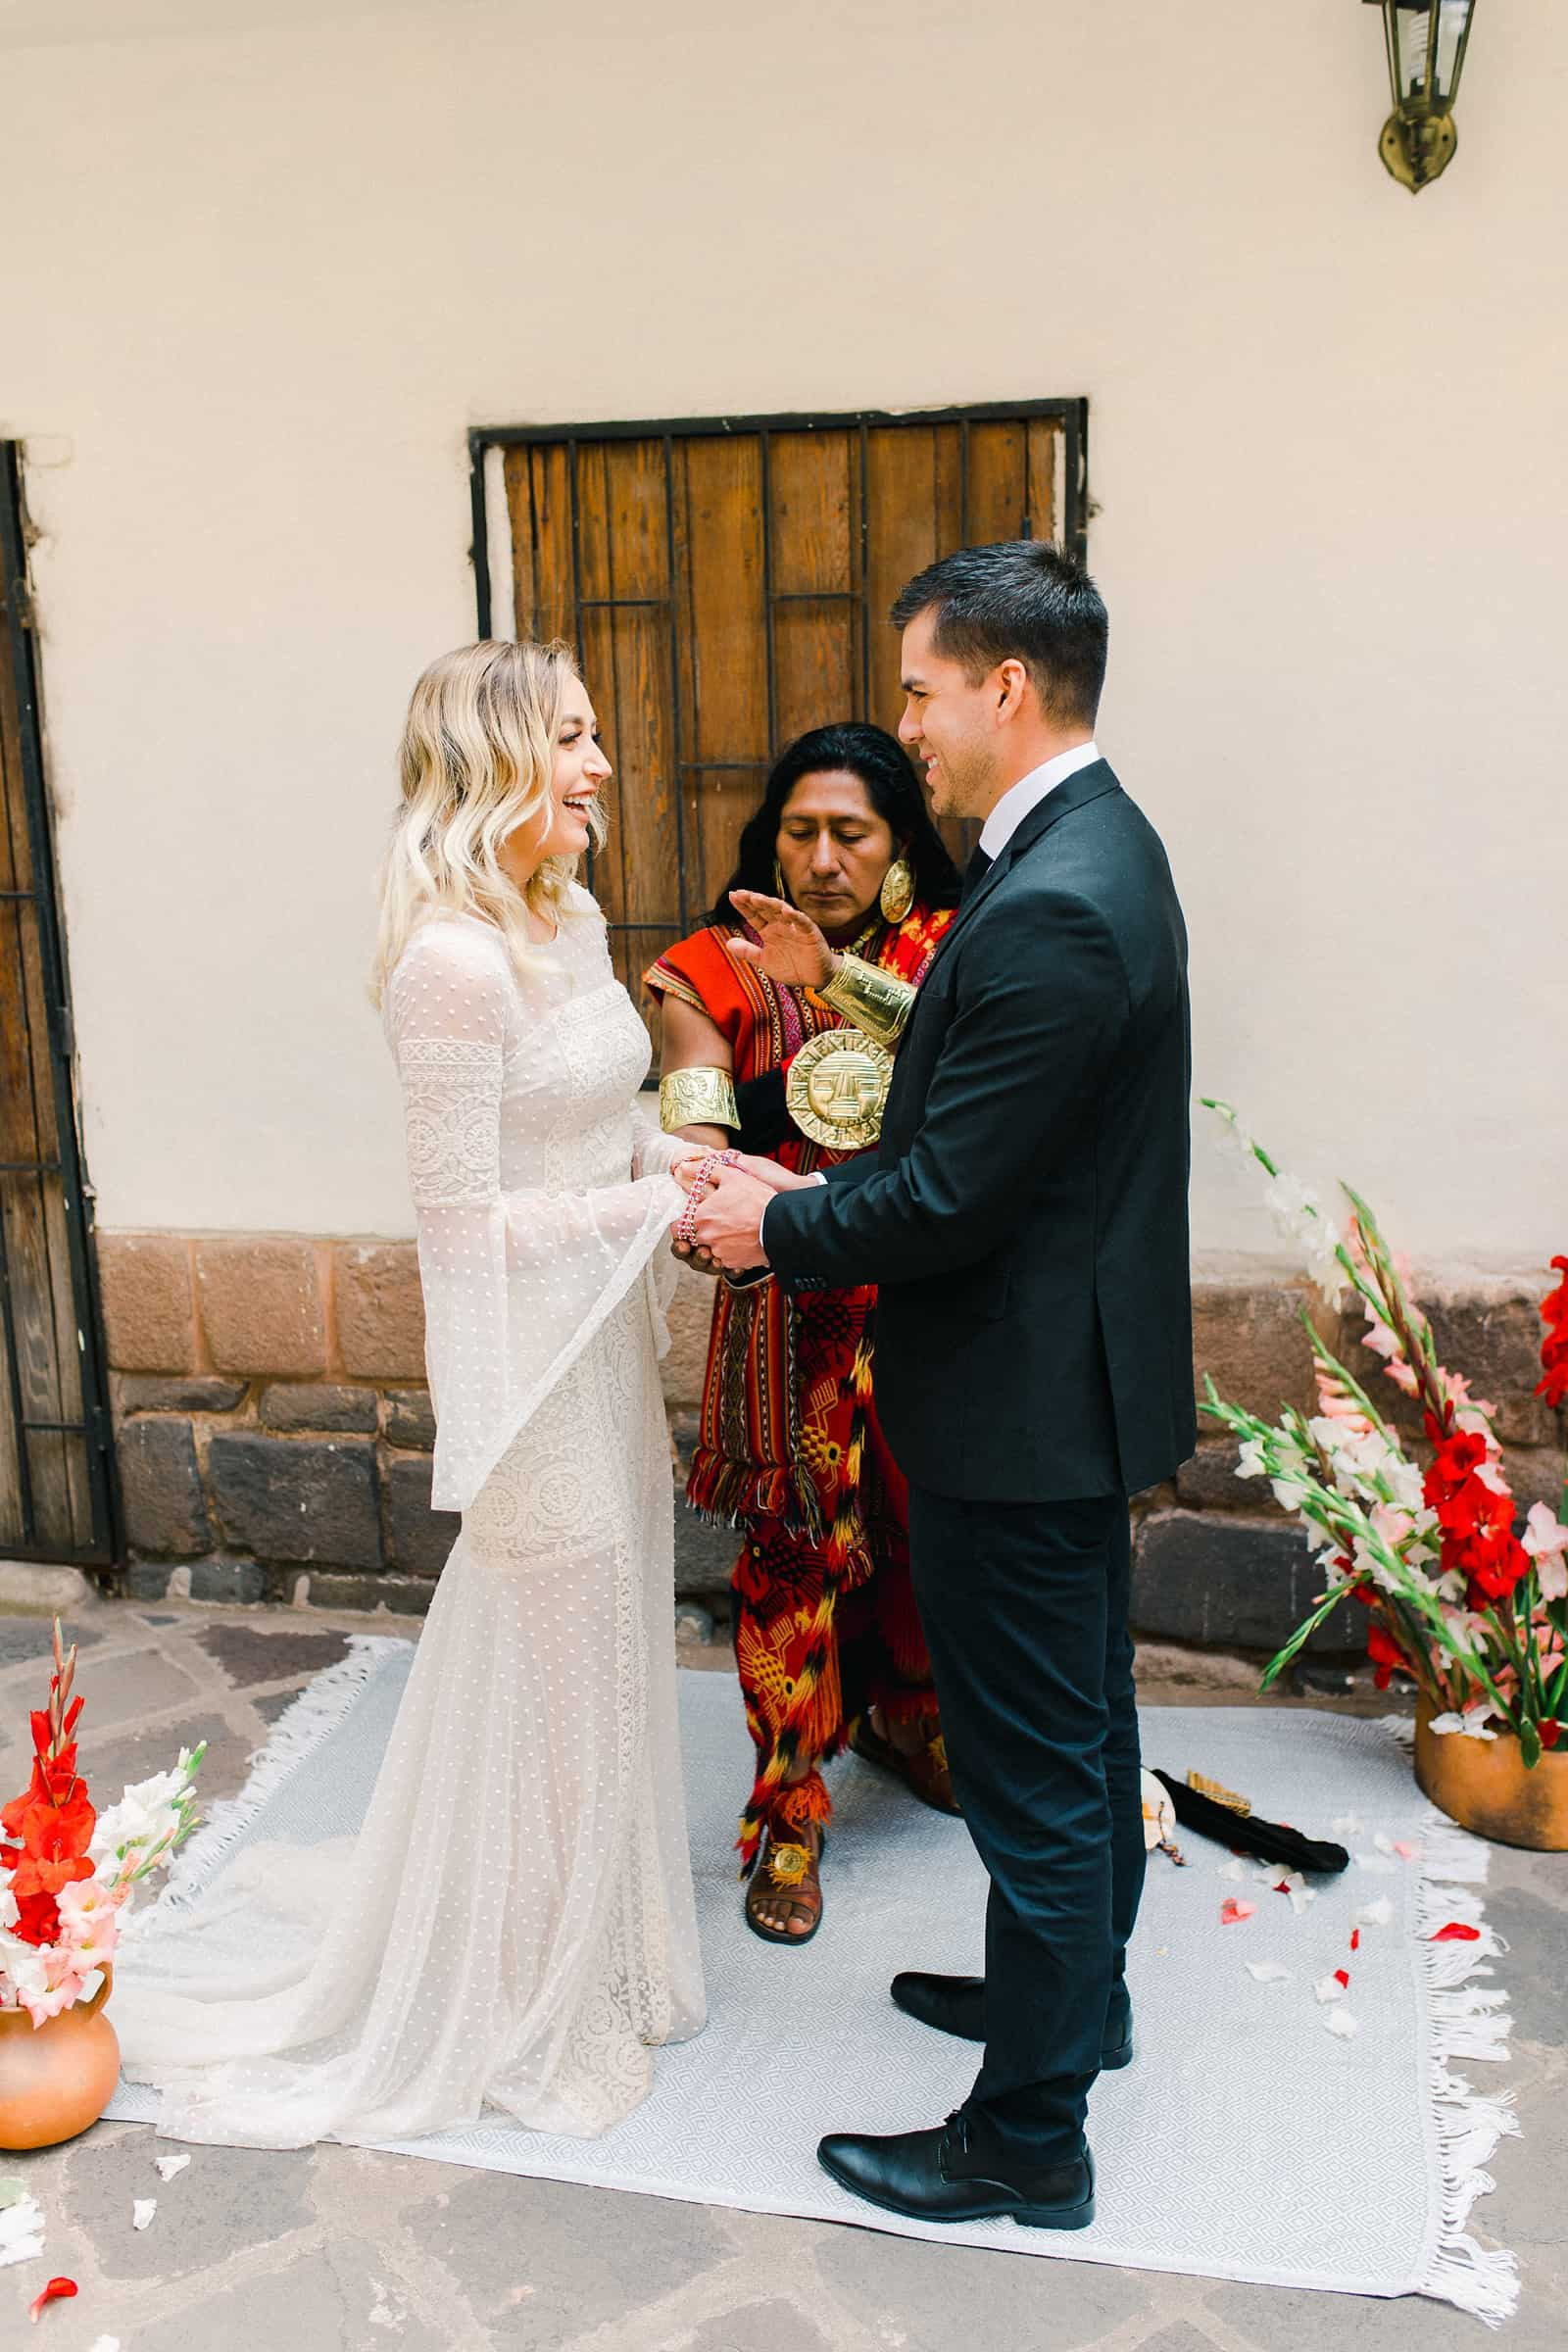 Cusco Peru Destination Wedding, travel wedding photography, Plaza de Armas ceremony with shaman boho wedding